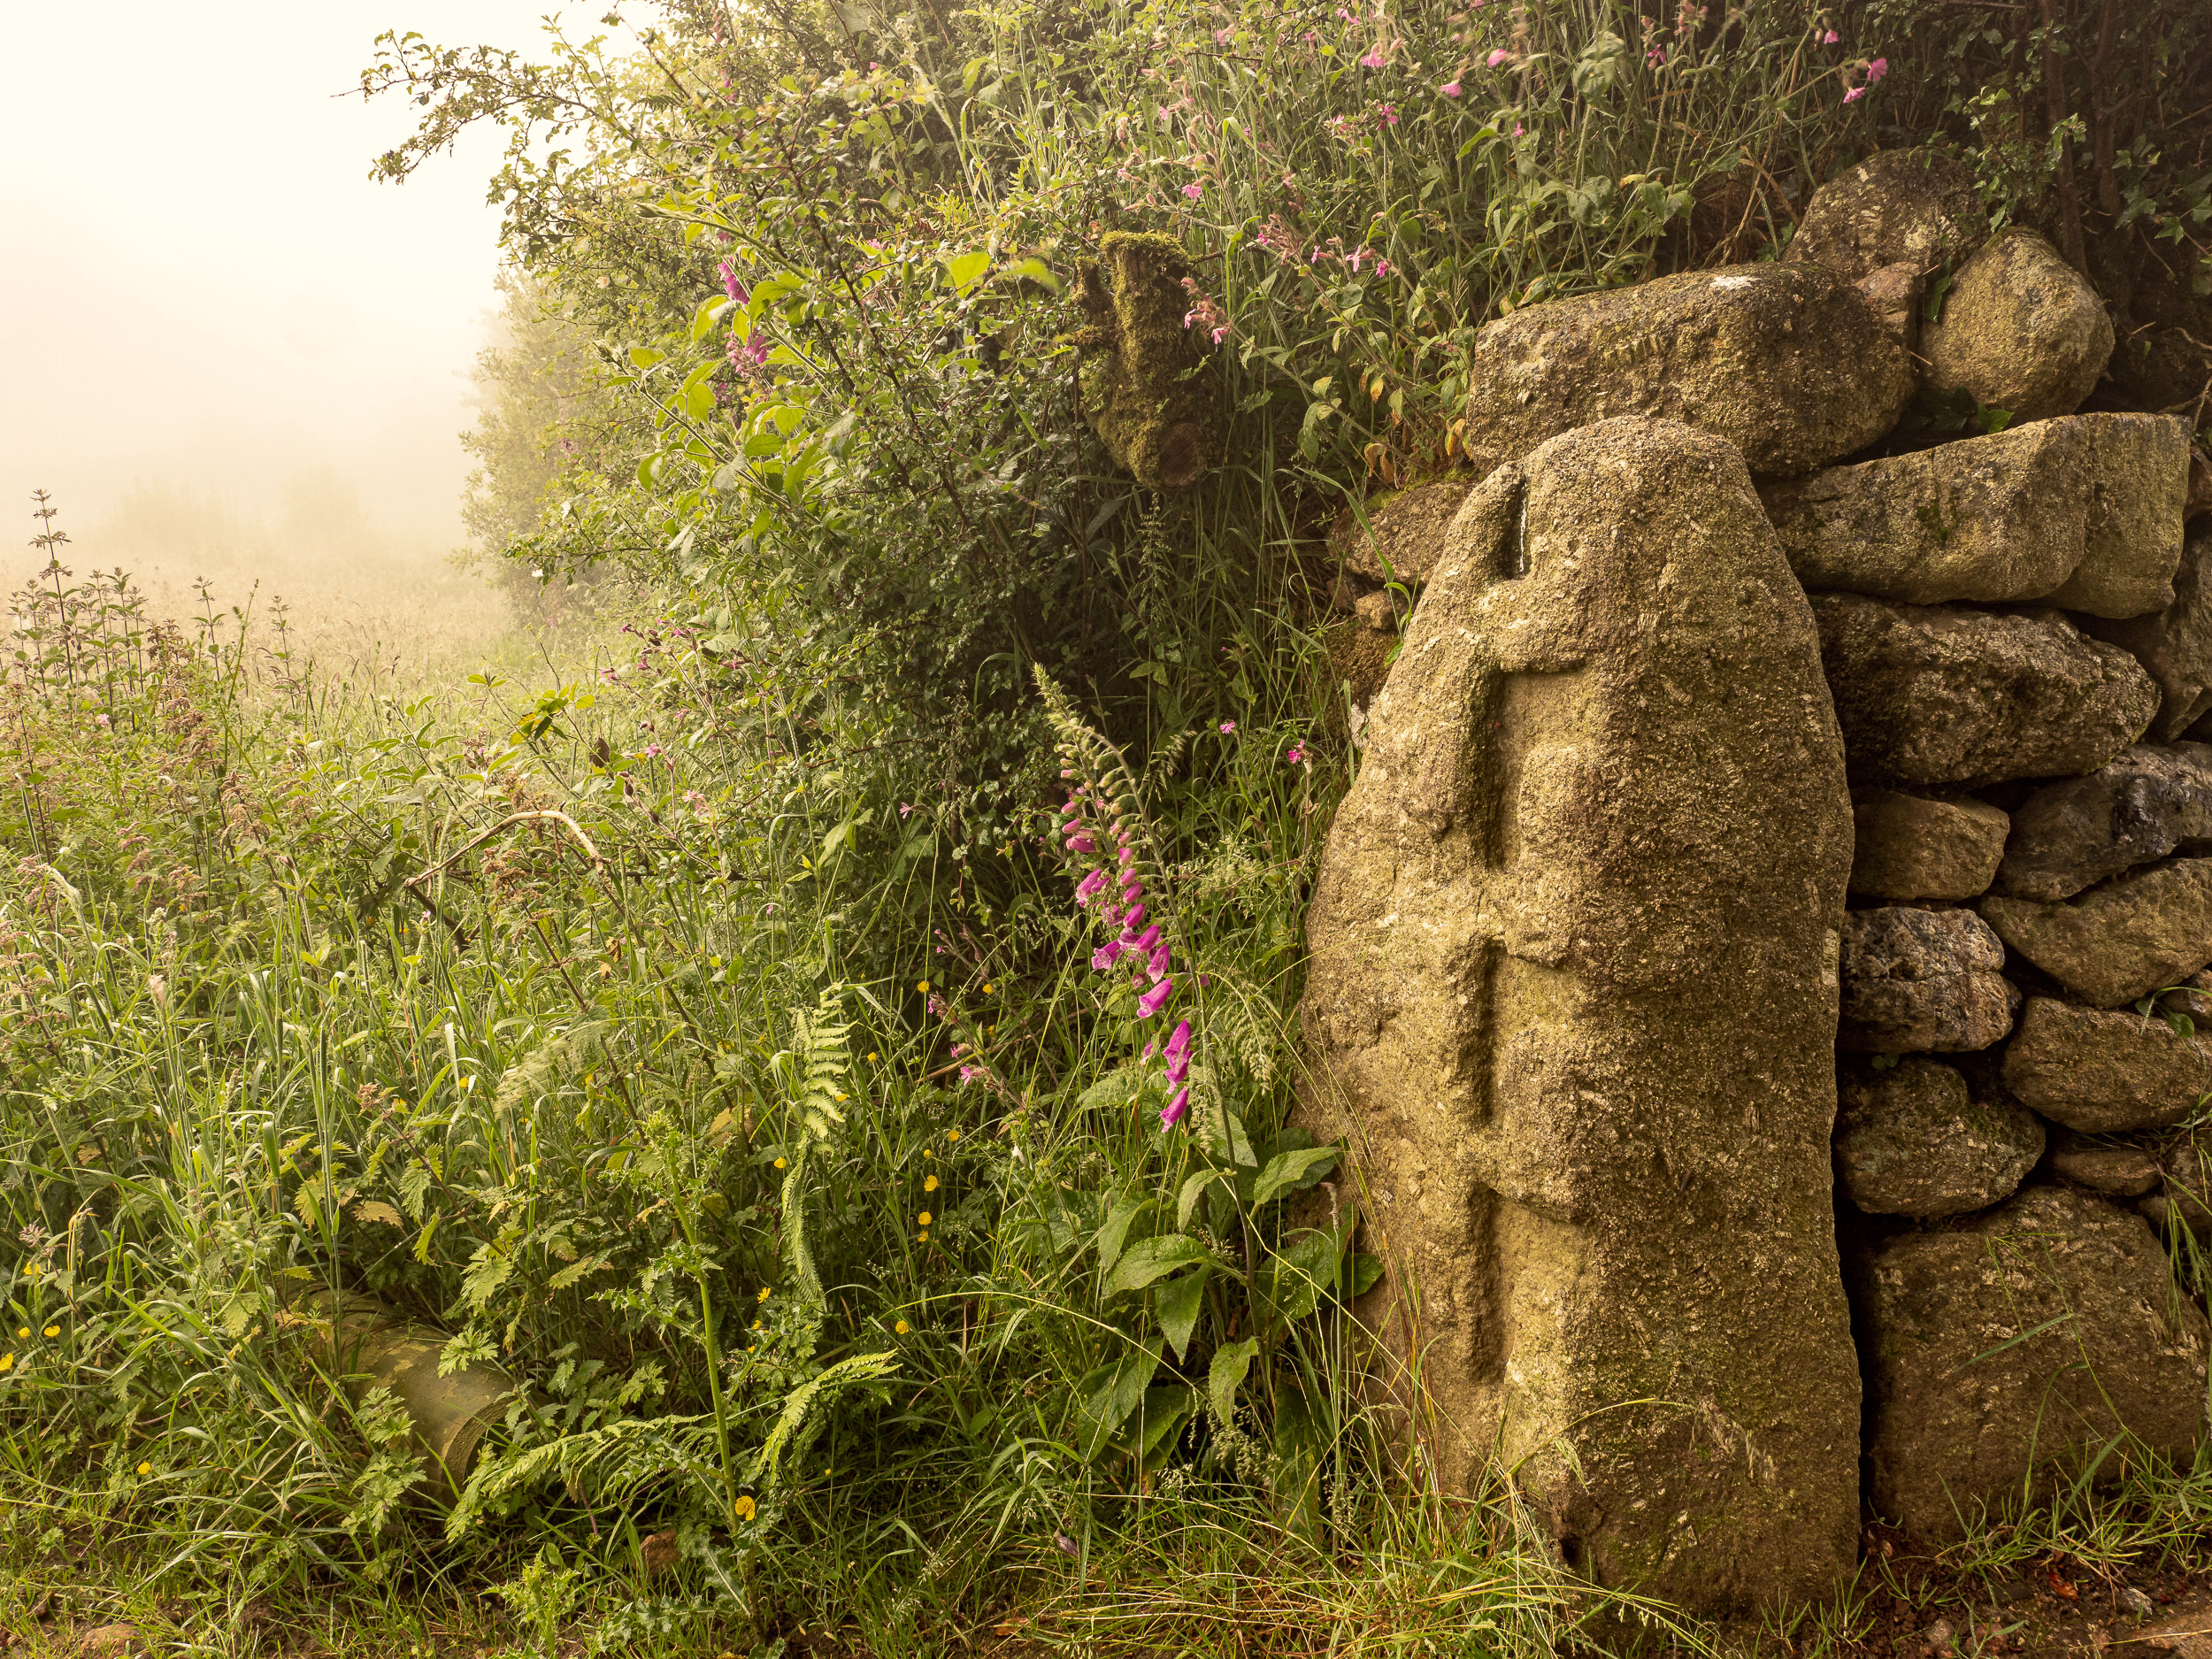 - with an ancient moor stone carved as a gate post. Poles would have been slotted into these grooves. There are quite a few of these around the fringes of the moor, with different patterns of post hanger. Here the stone has been repurposed as a modern gate post.